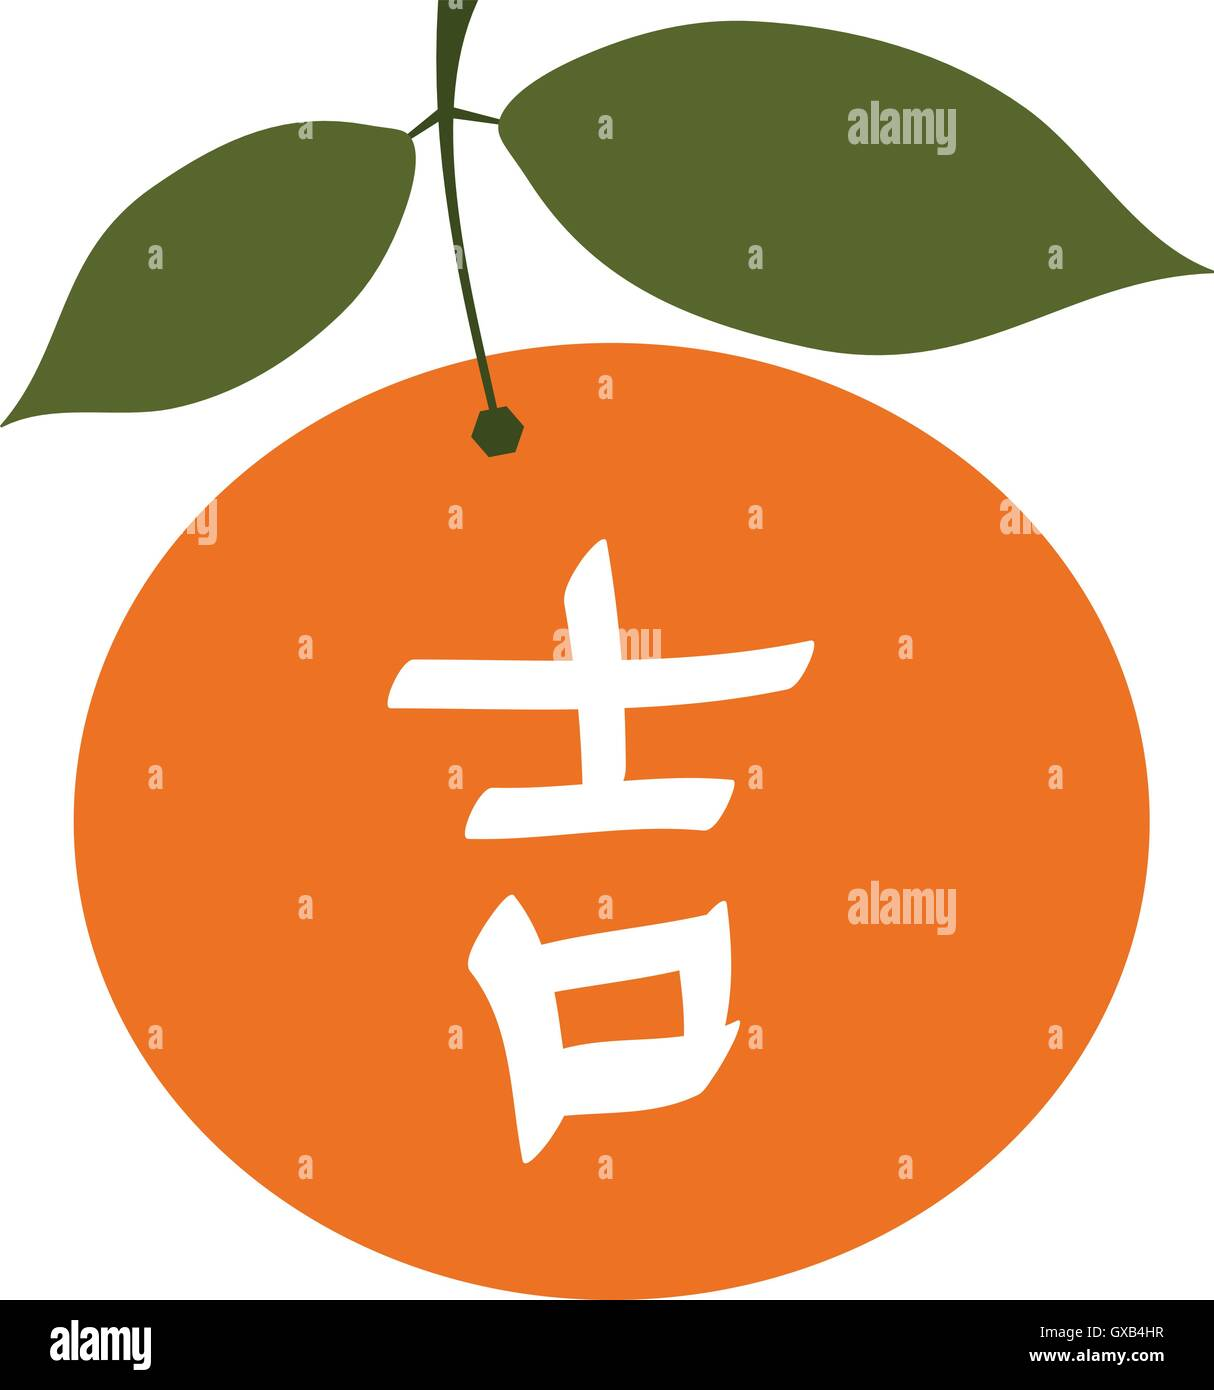 chinese new year symbol ji meaning lucky - Chinese New Year Symbols